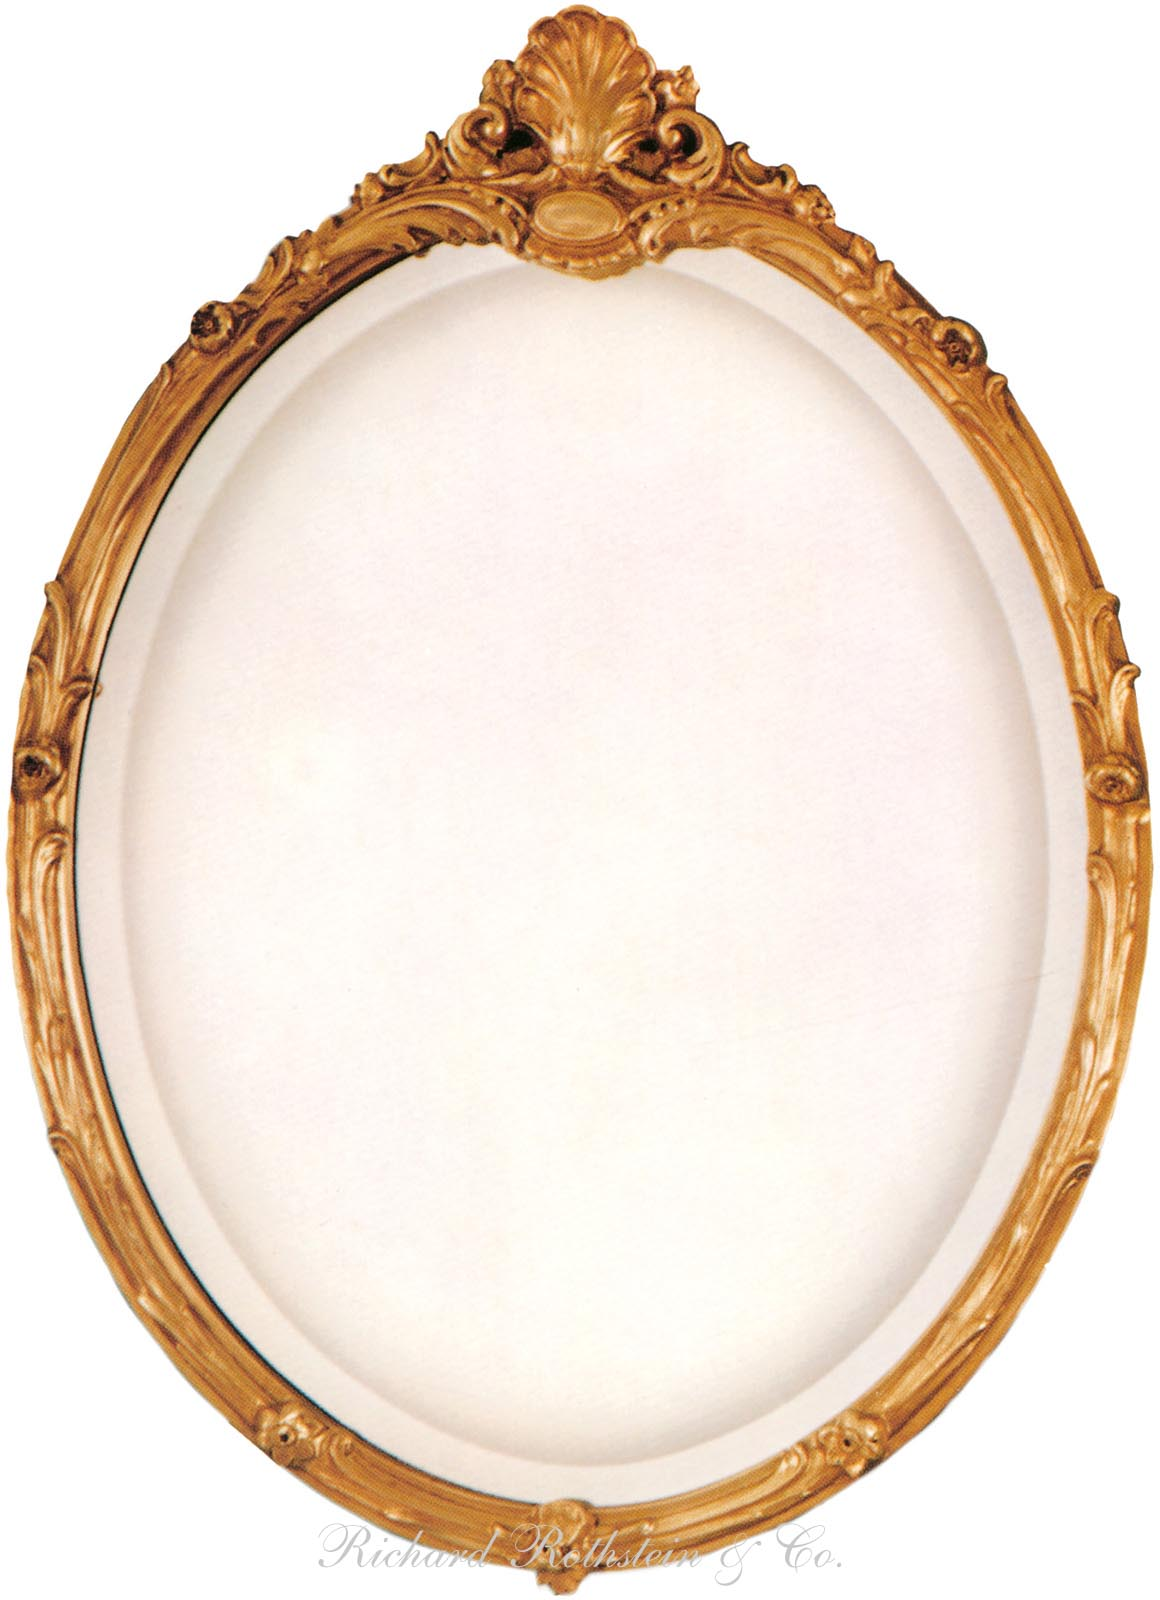 Oval Mirror Gold French Style Oval Mirror